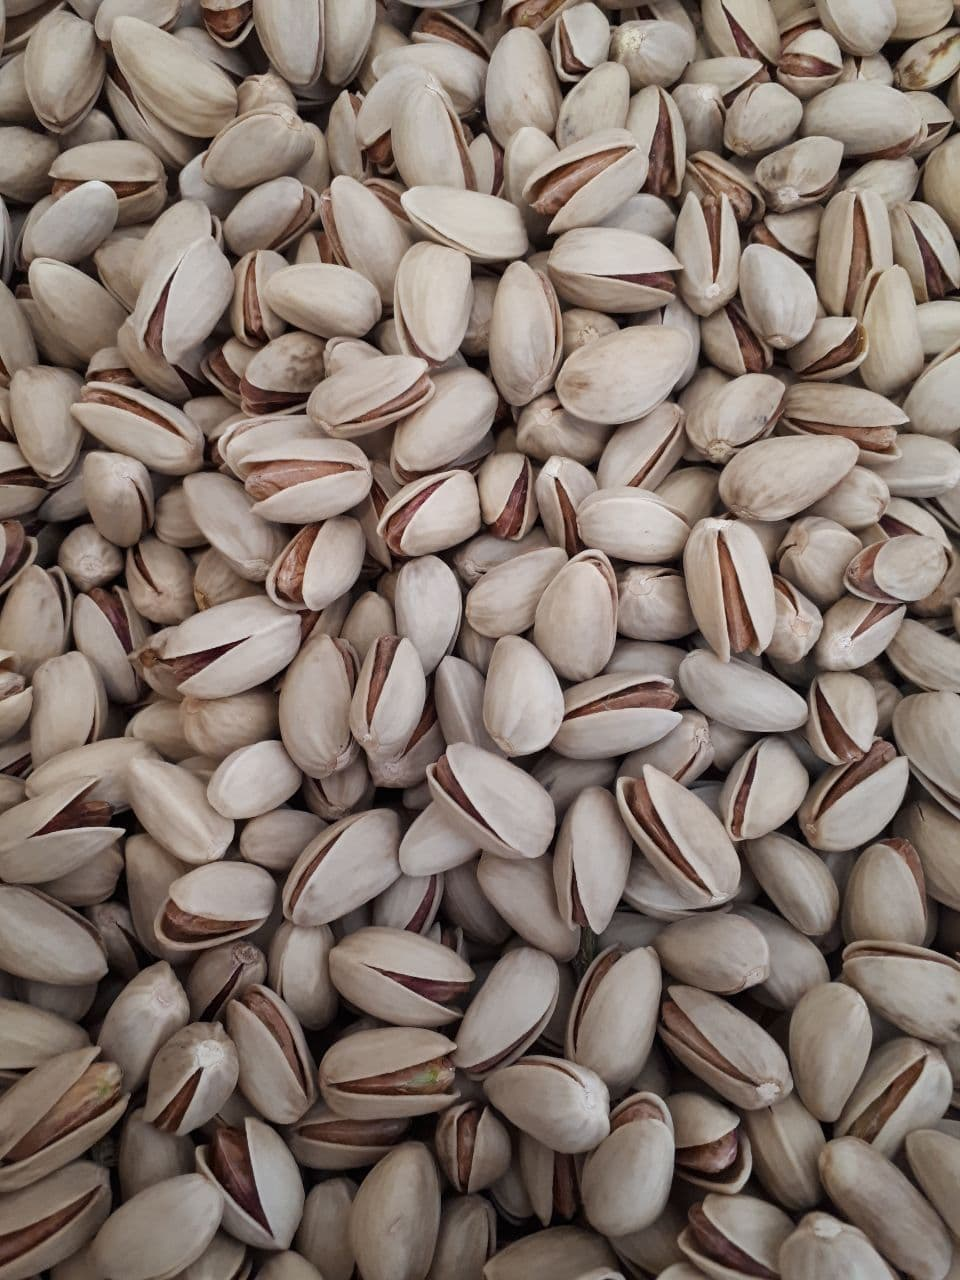 Sale of Iranian pistachio tonnage, Akbari model, size 24, white and without stains